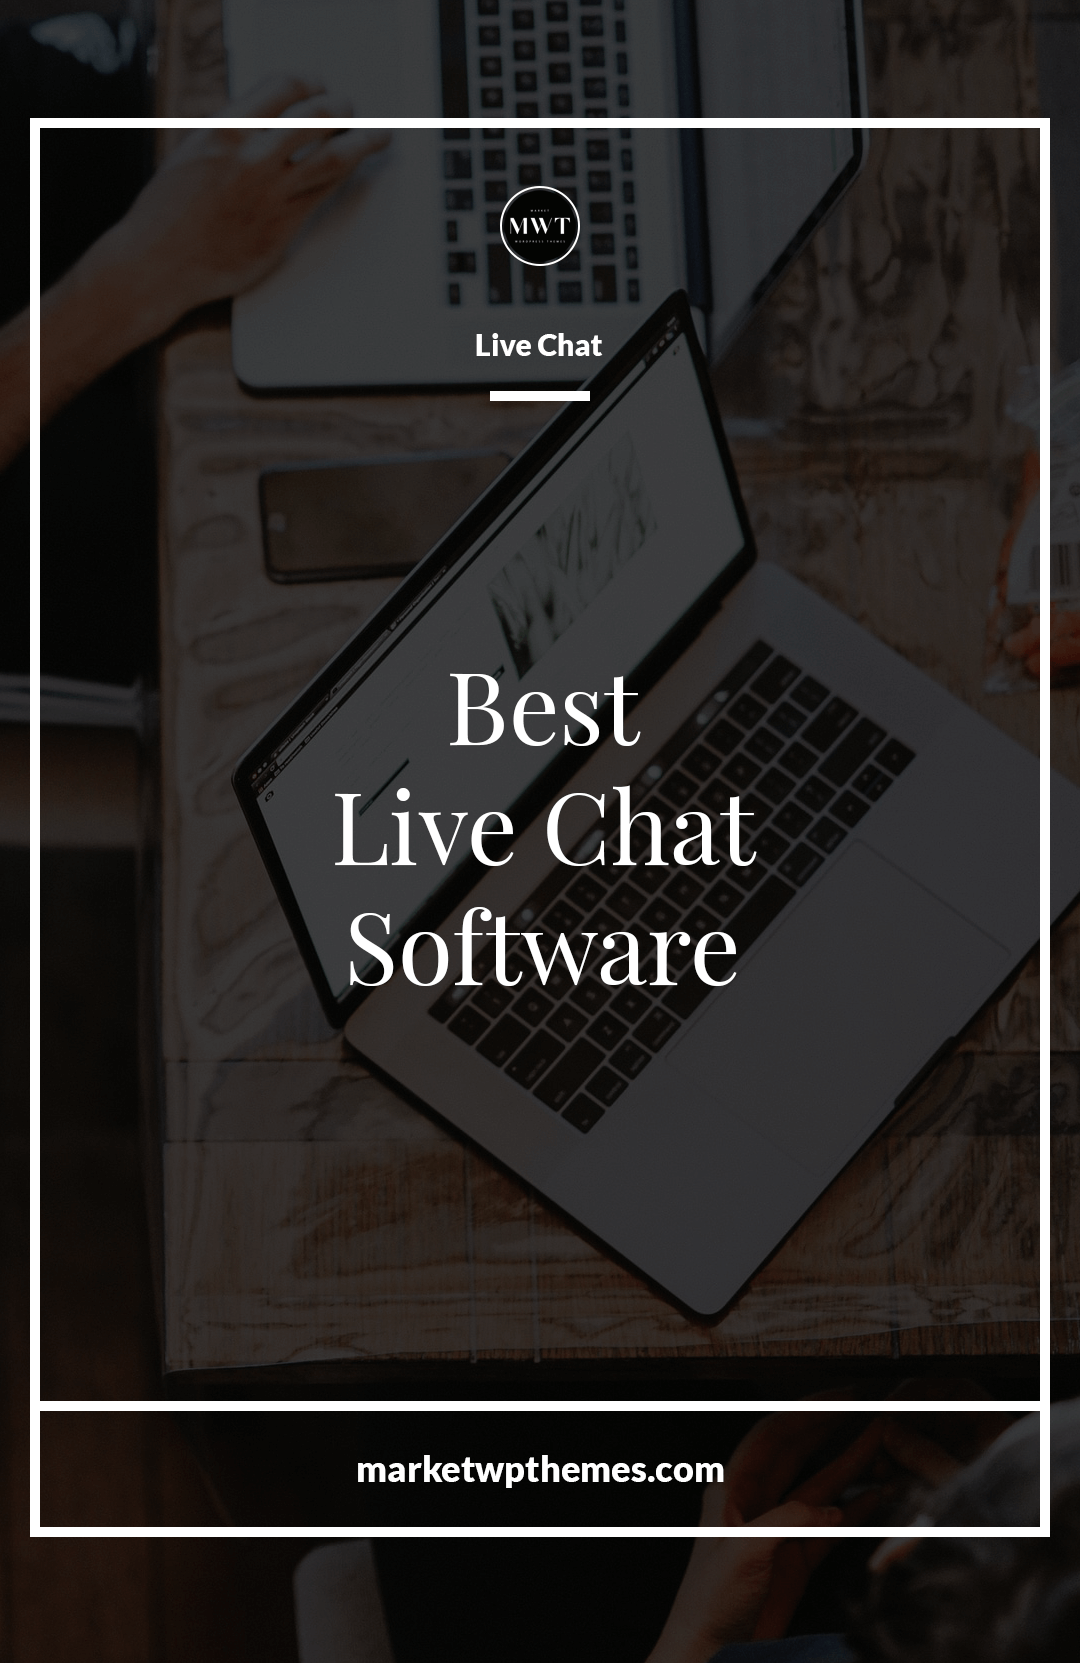 Best Live Chat Software